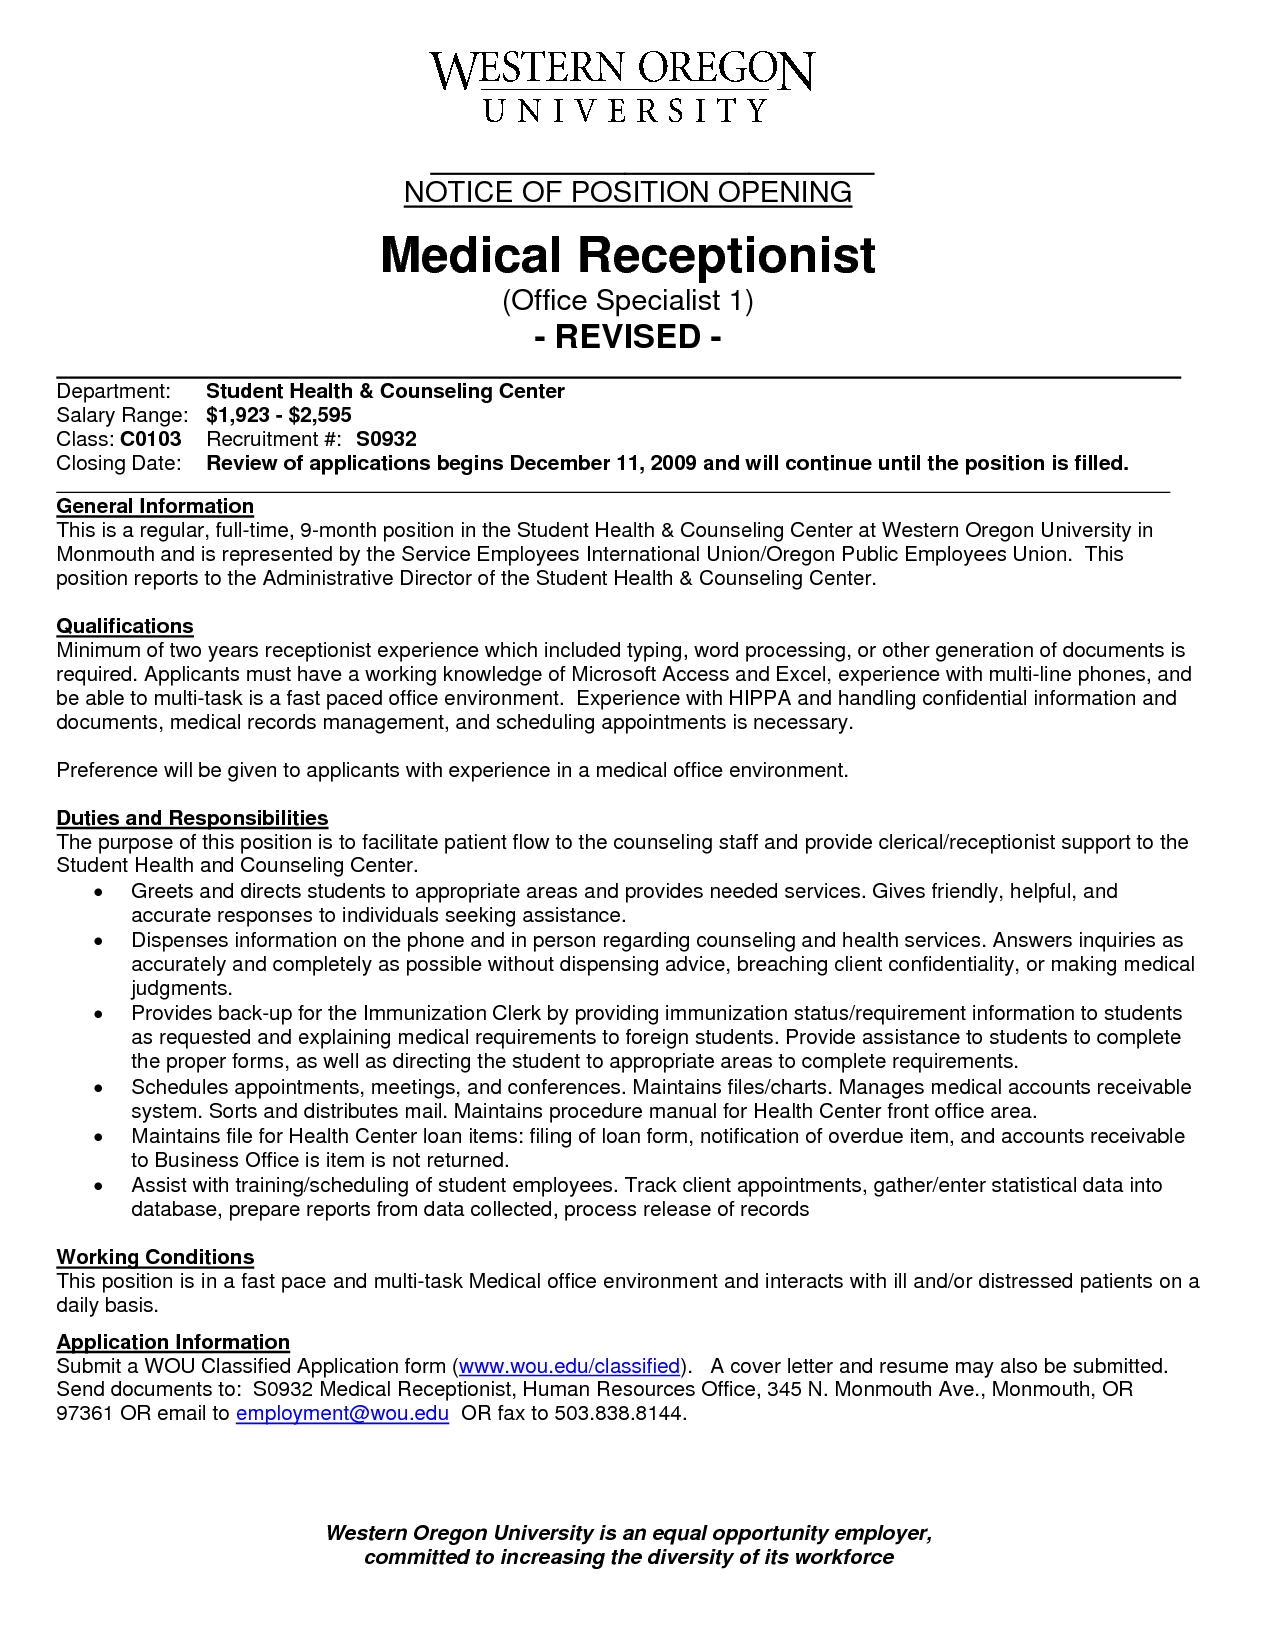 resume Resume Examples For Receptionist Job office job resume sample clerk entry level click 12 medical receptionist jobs fresh format specialist resume